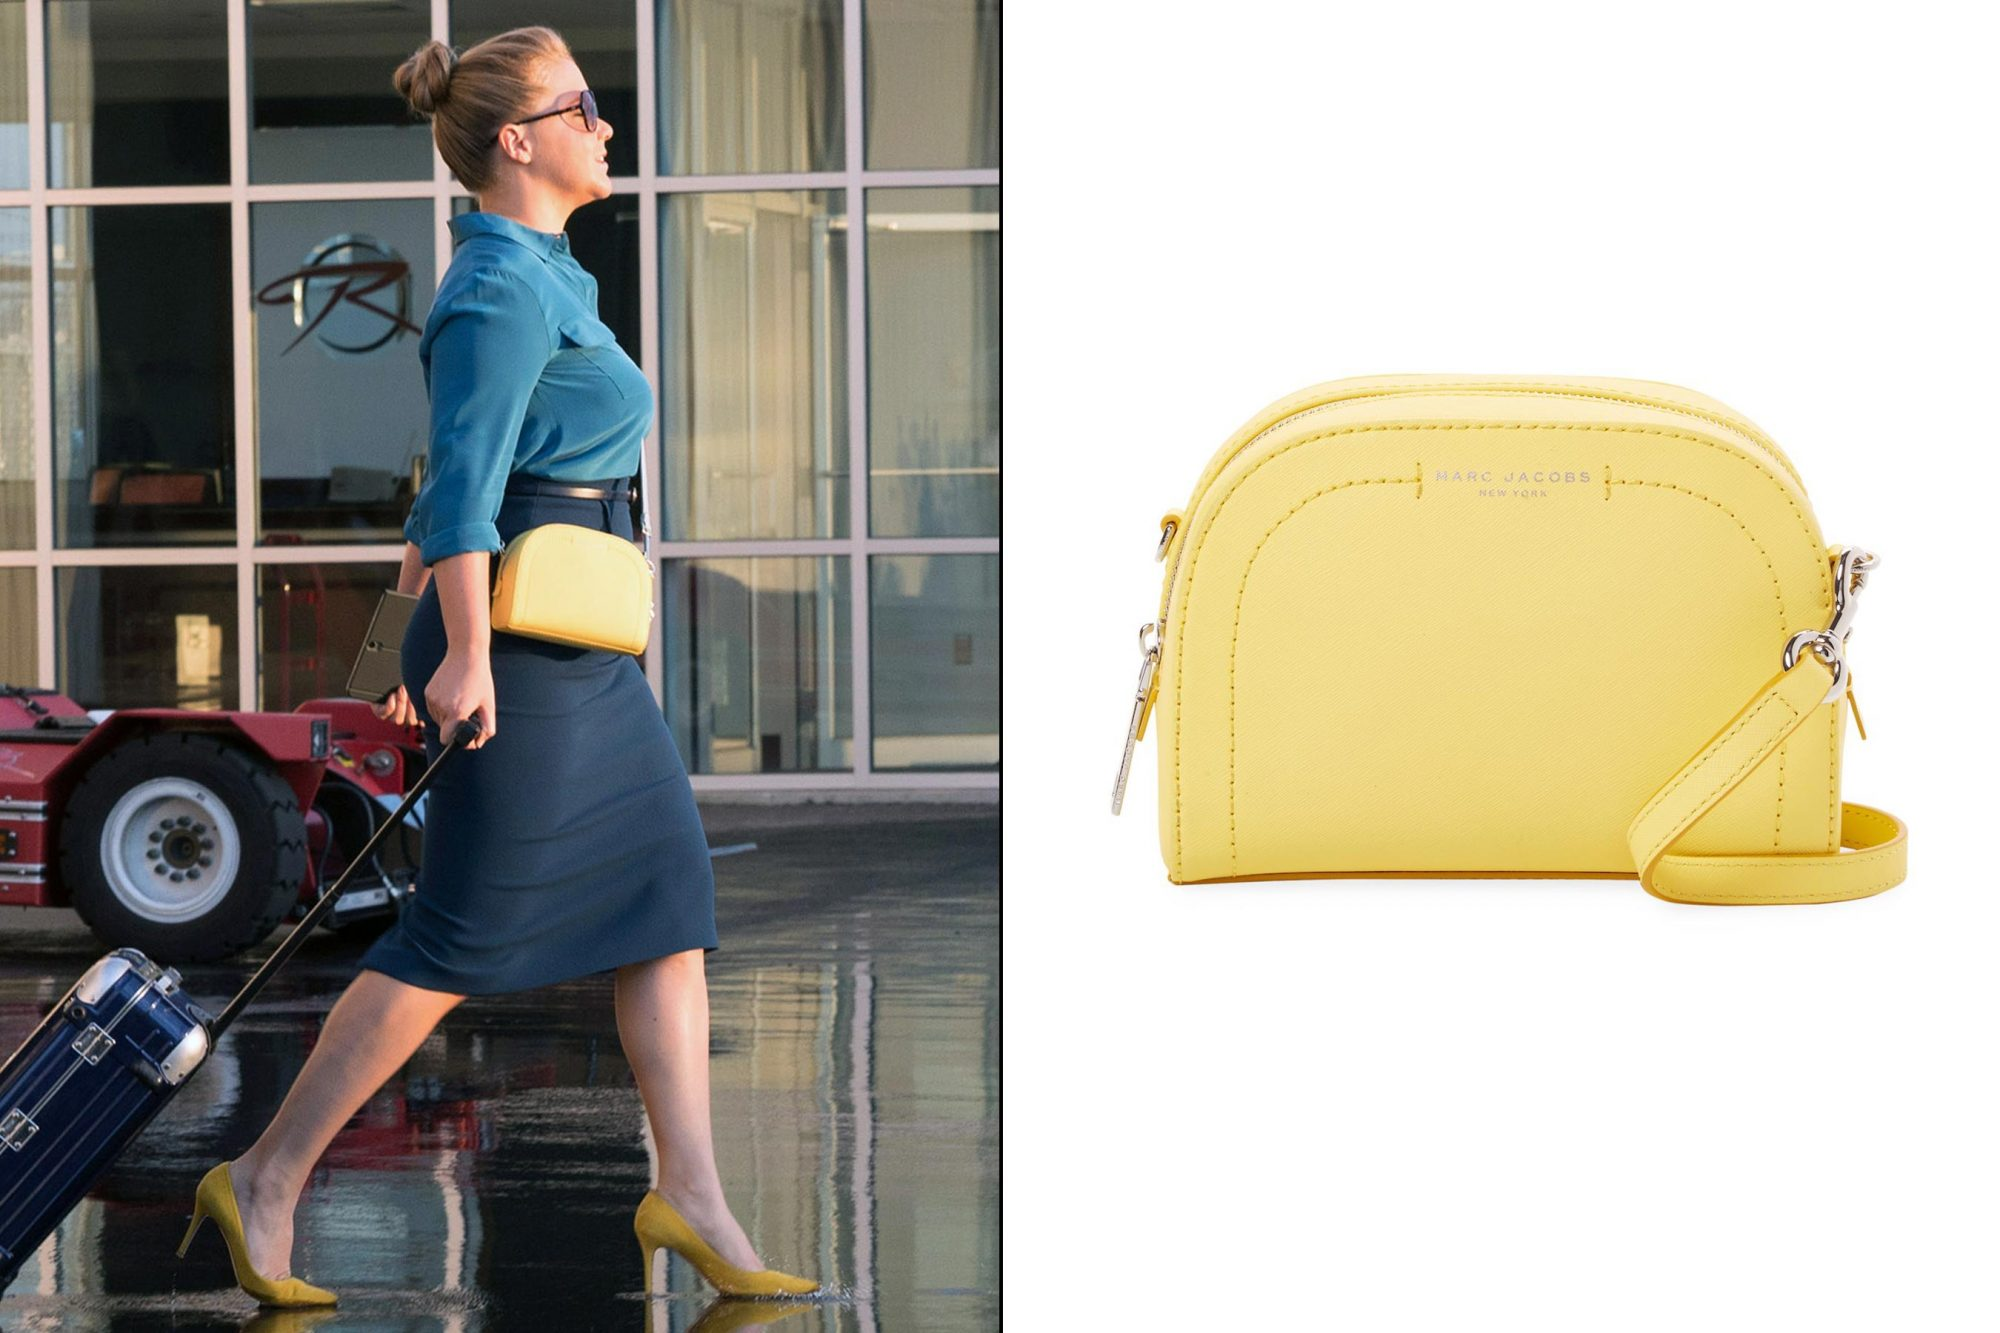 Renee Bennett's (Amy Schumer) yellow accessories in I Feel Pretty